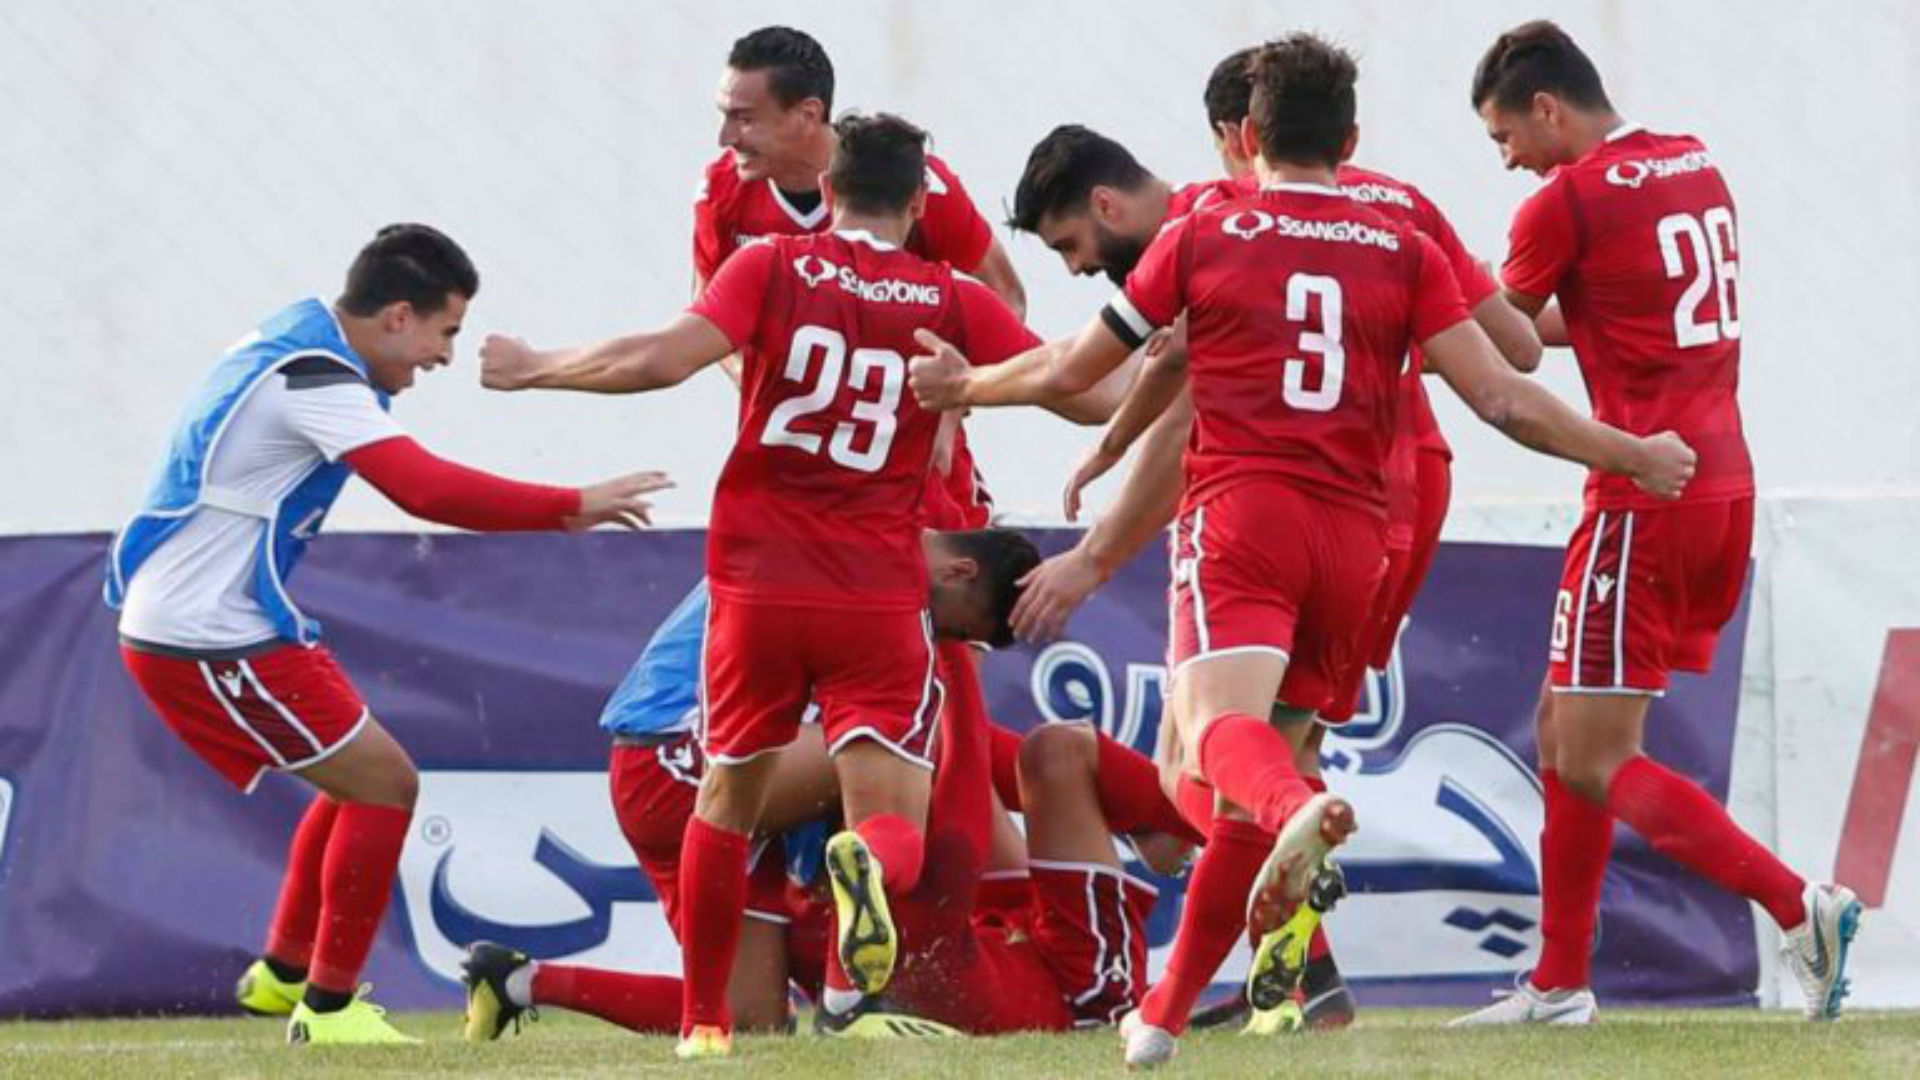 Platinum 0-3 Etoile: Etoile du Sahel go three points clear in Group B after impressive away victory over Platinum of Zimbabwe